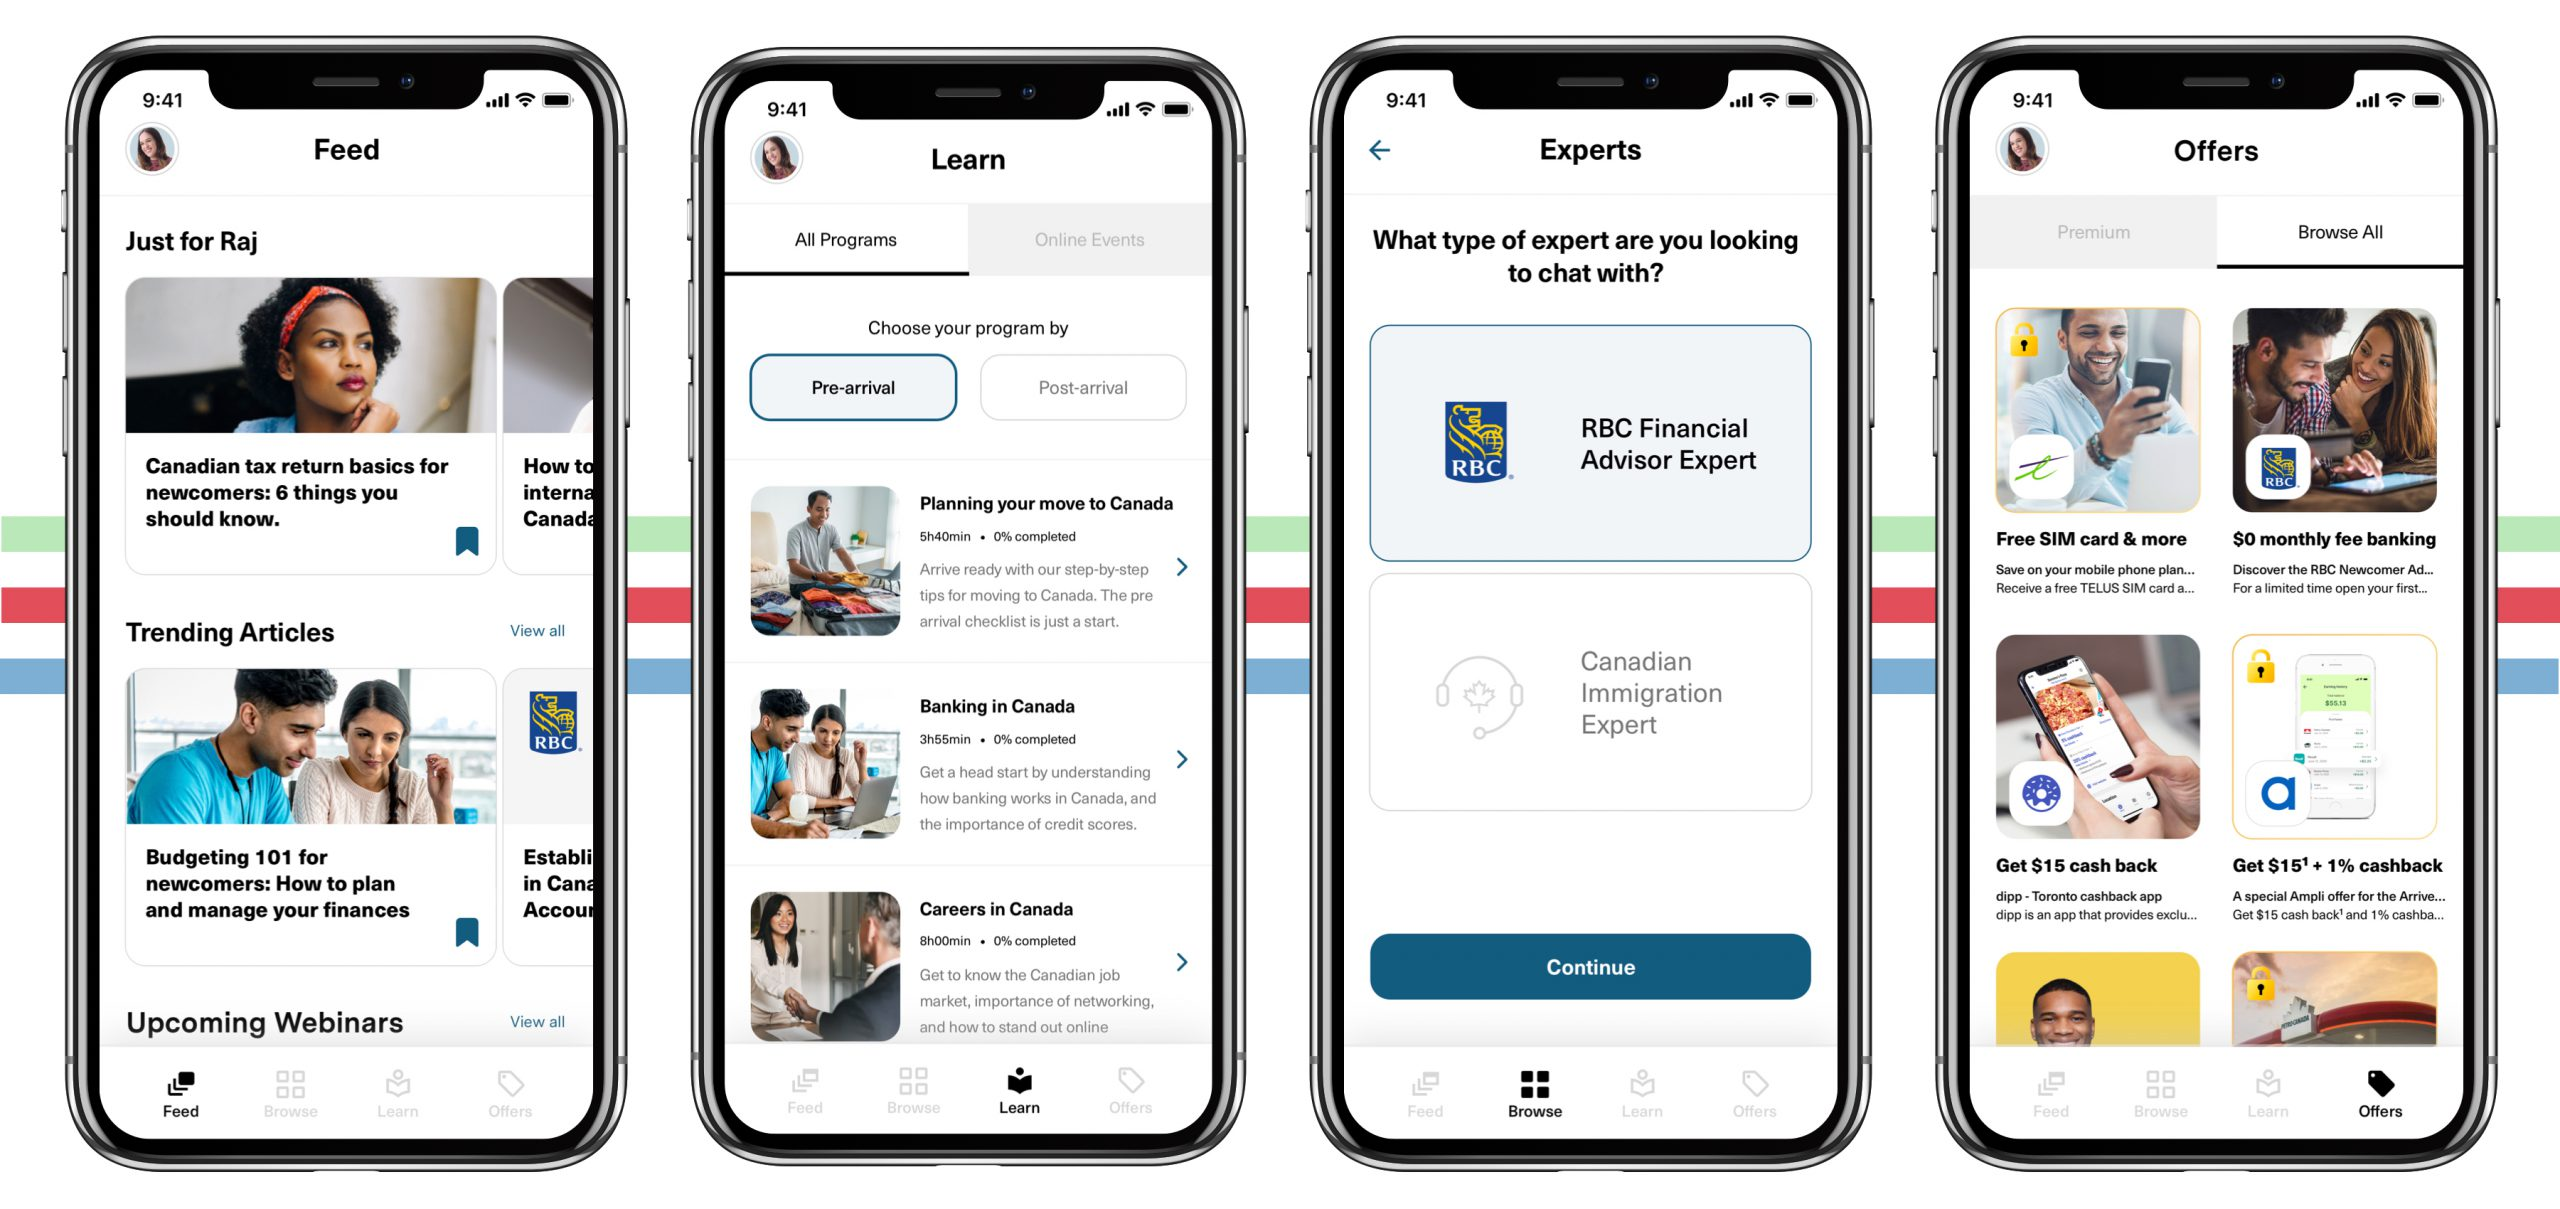 """New Arrive app screens: """"Feed, Learn, Experts, and Offers"""", show different newcomer programs, tools, resources and features"""